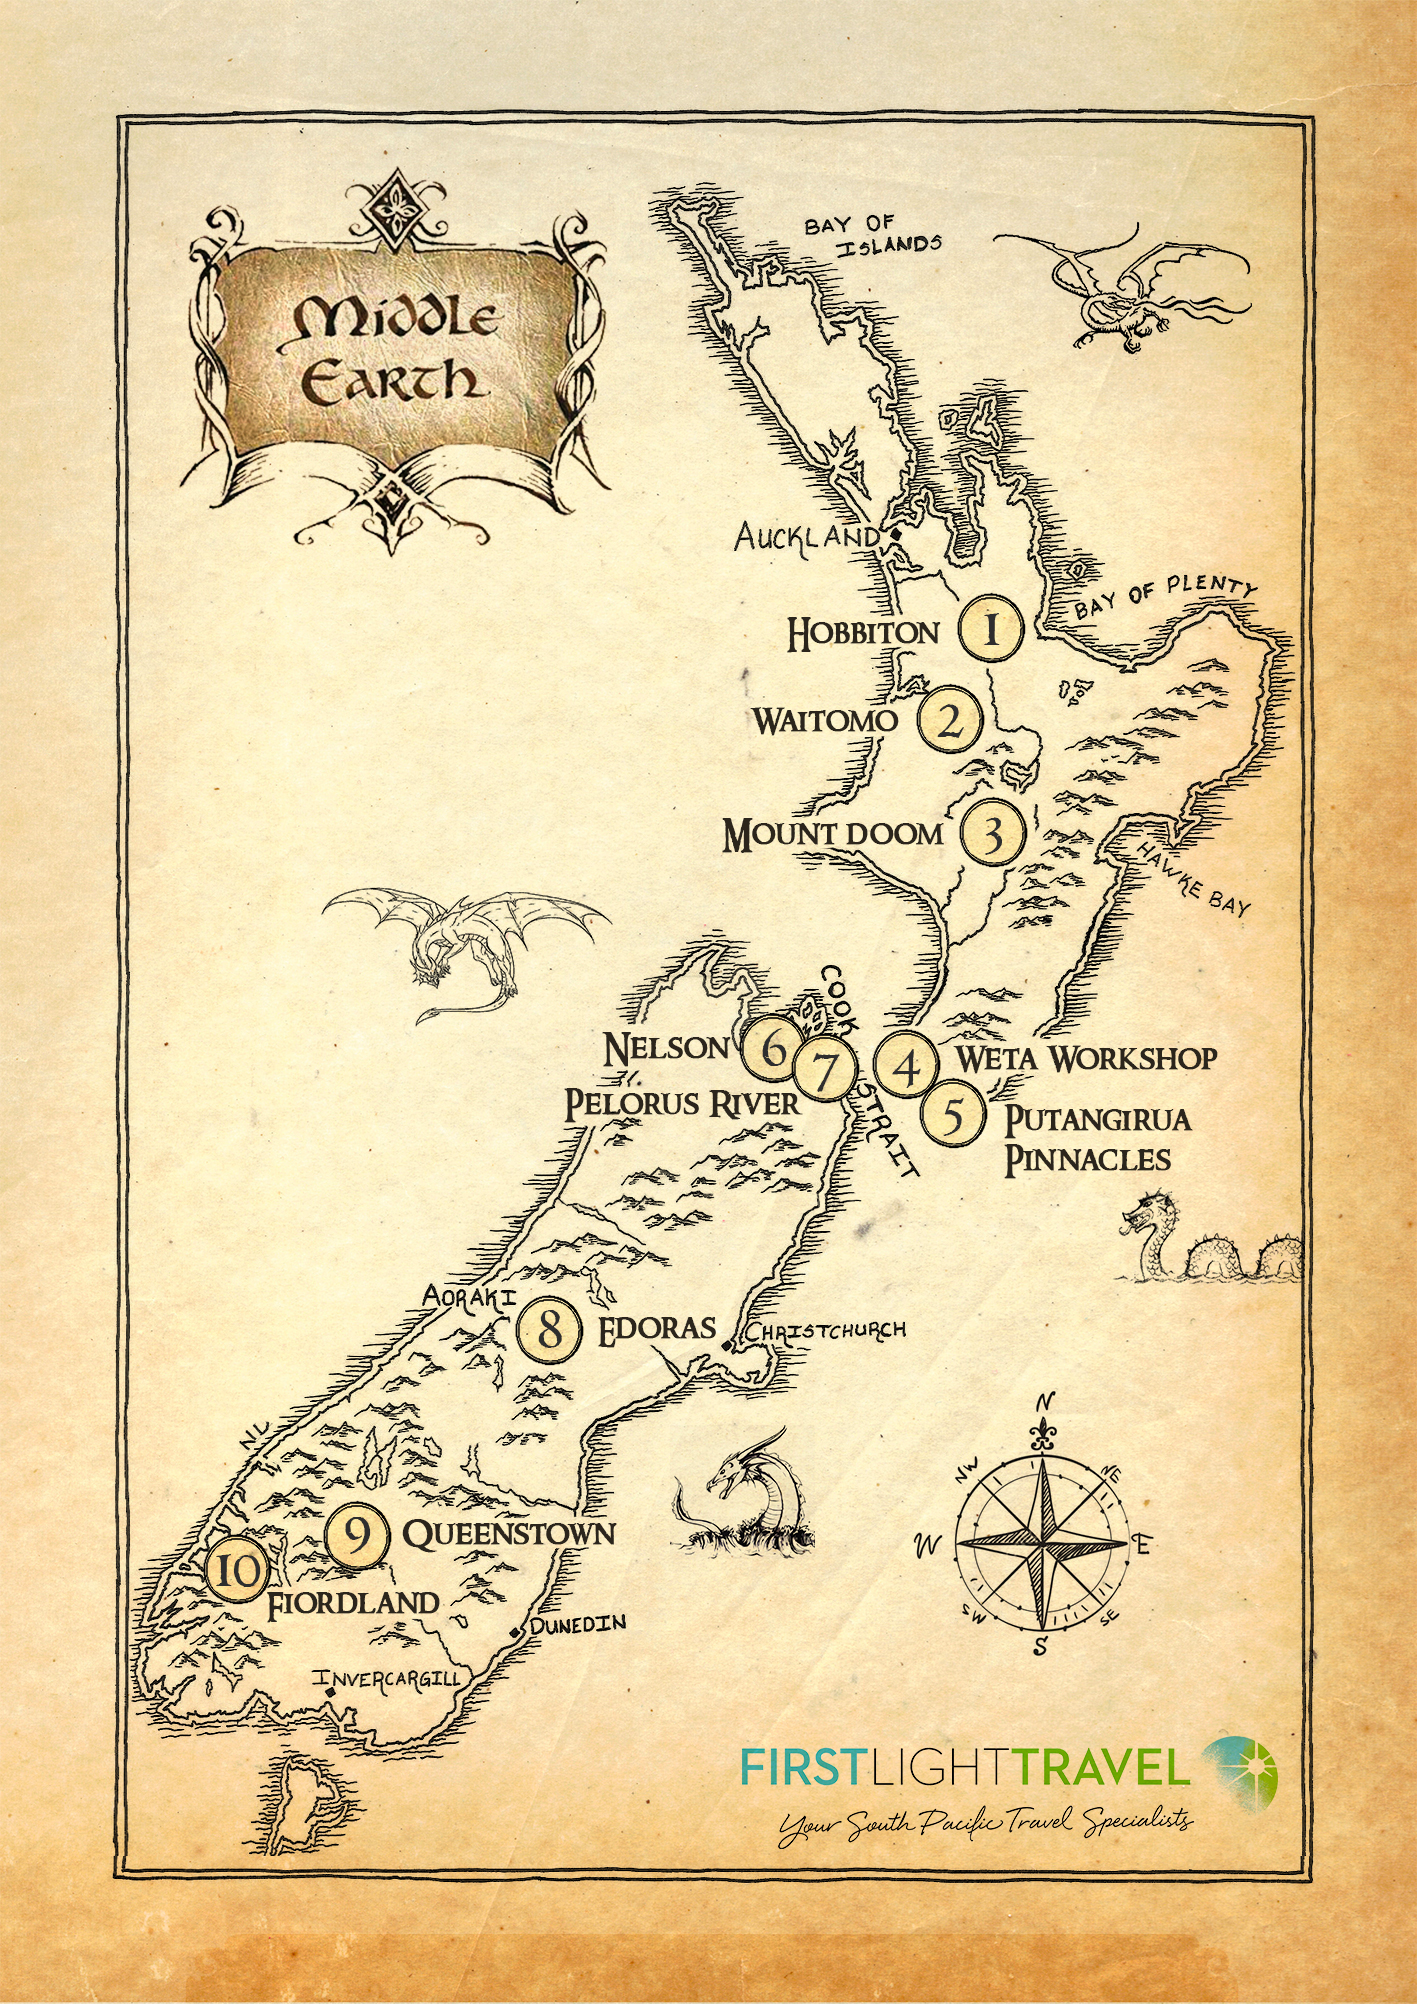 Download The New Zealand Lotr Hobbit Filming Location Guide